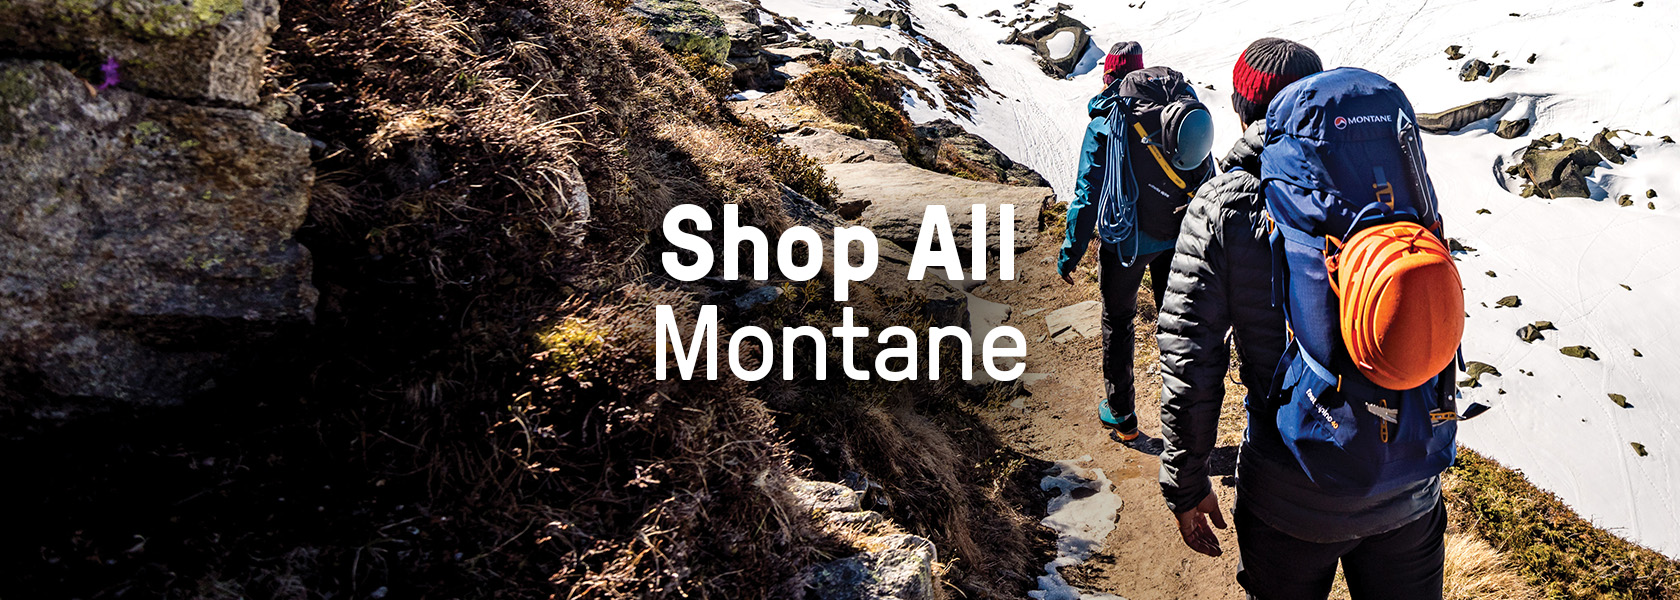 Couple trekking with Montane gear